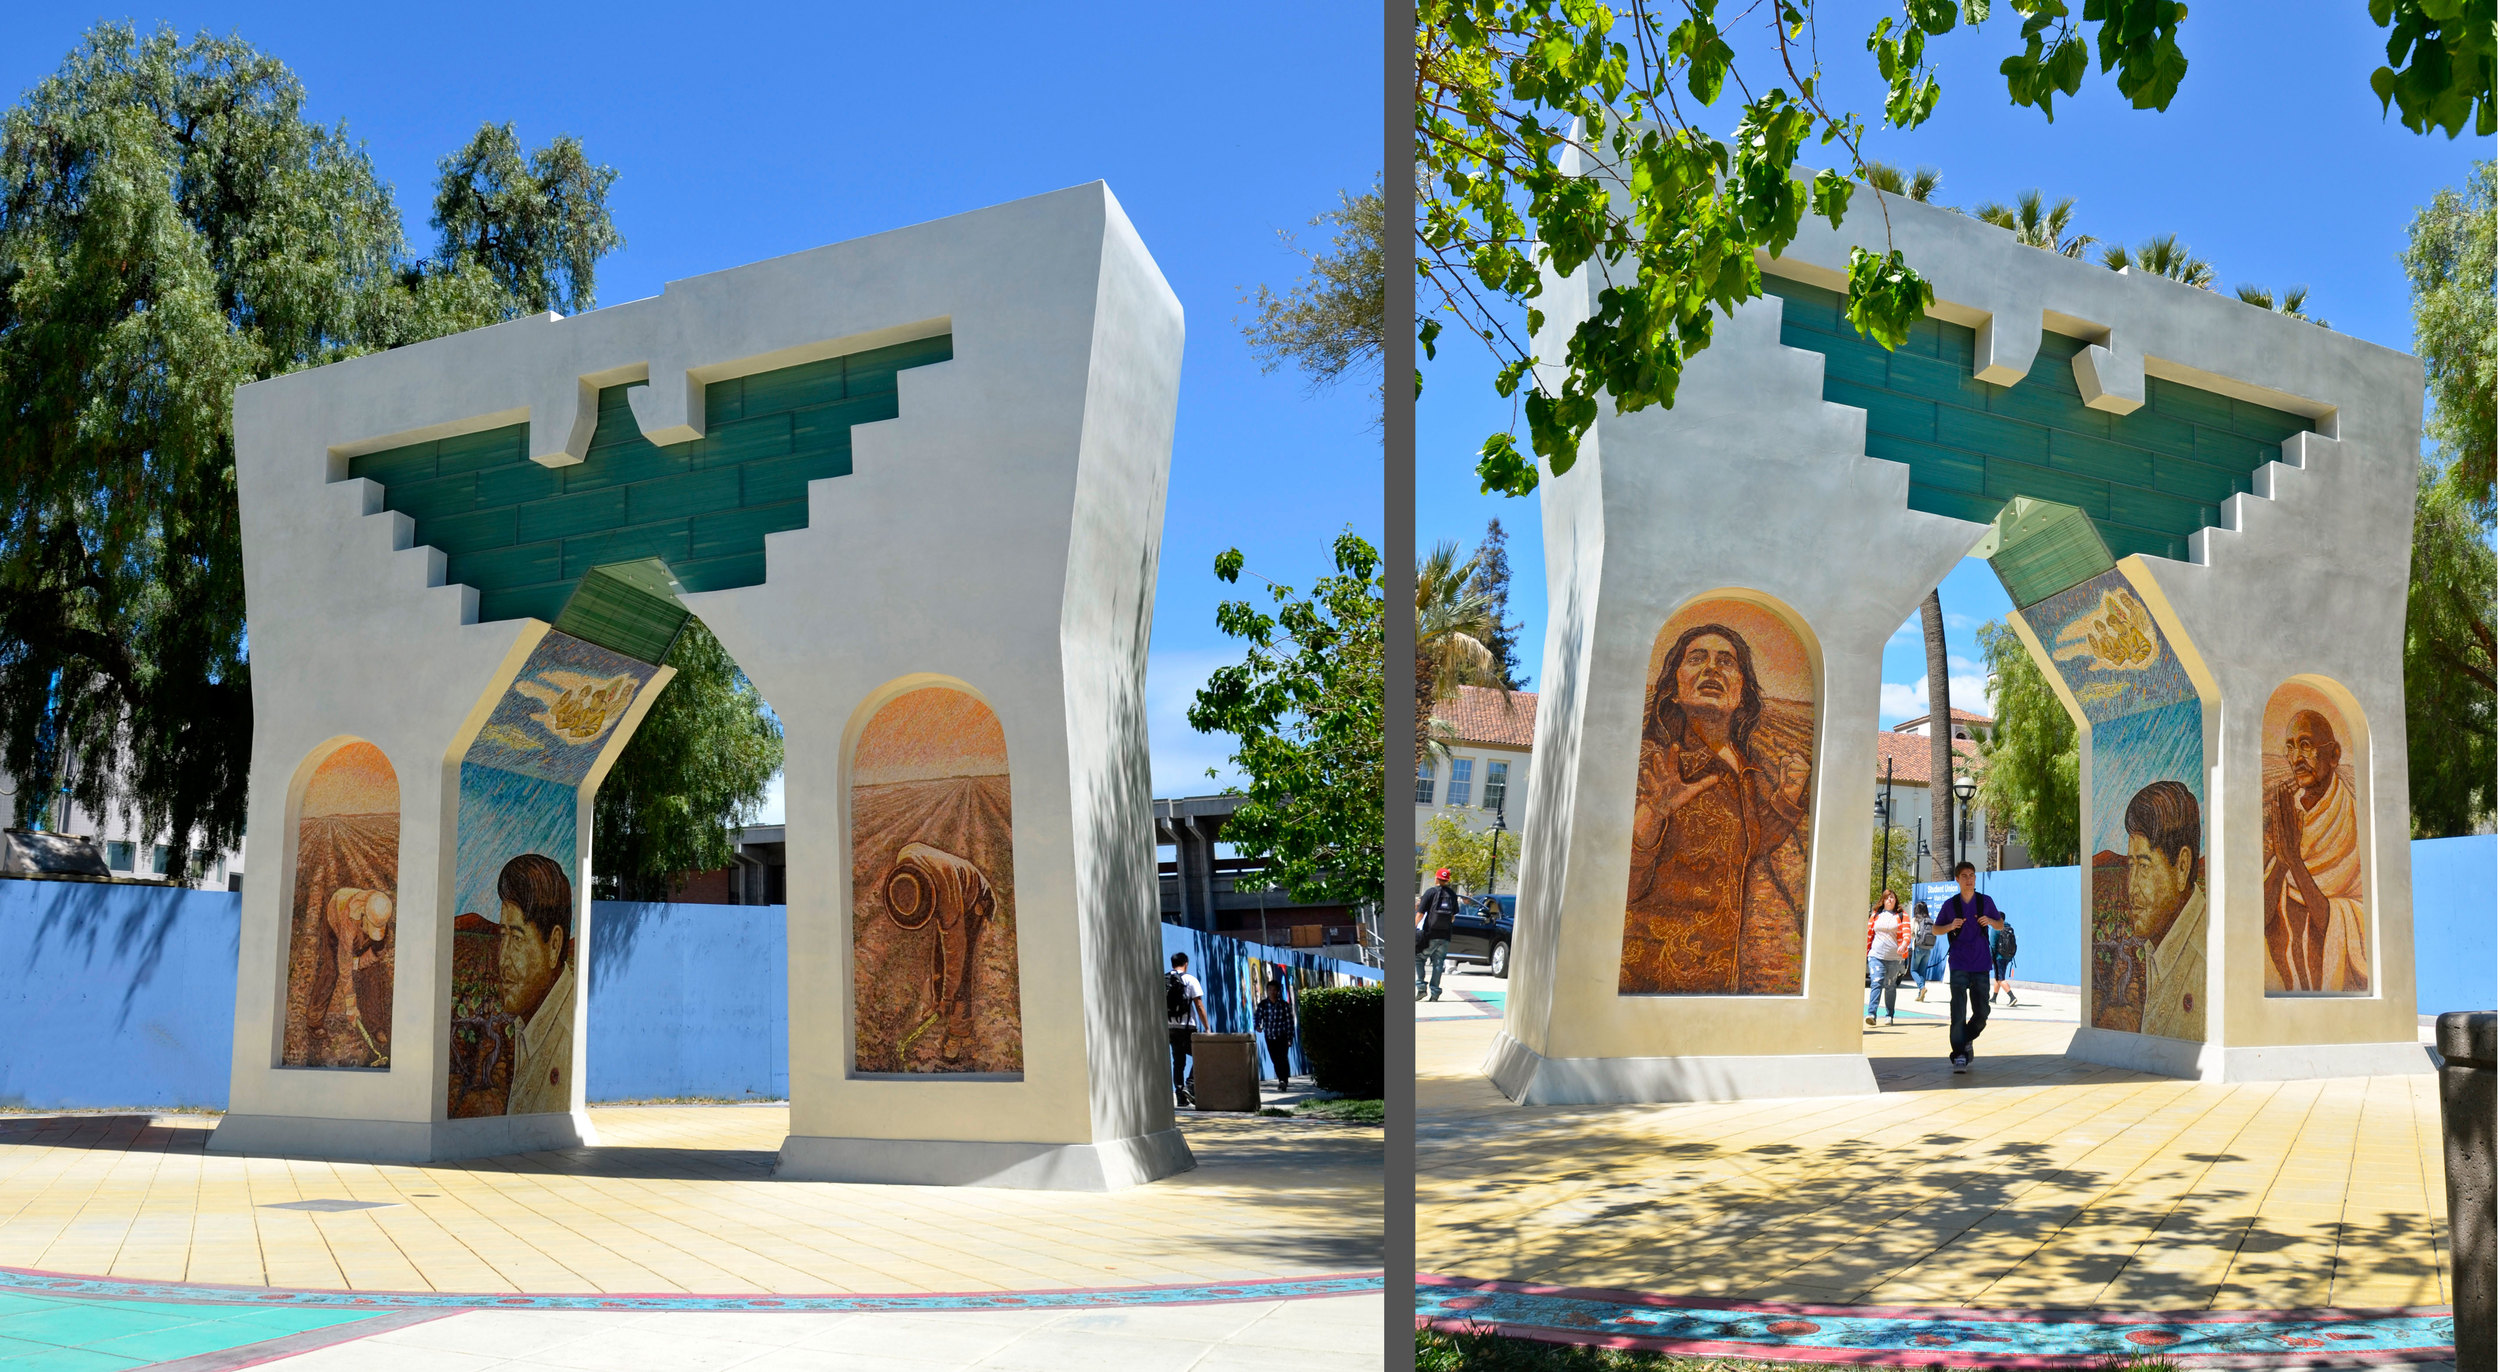 Arch of Dignity, Equality and Justice.